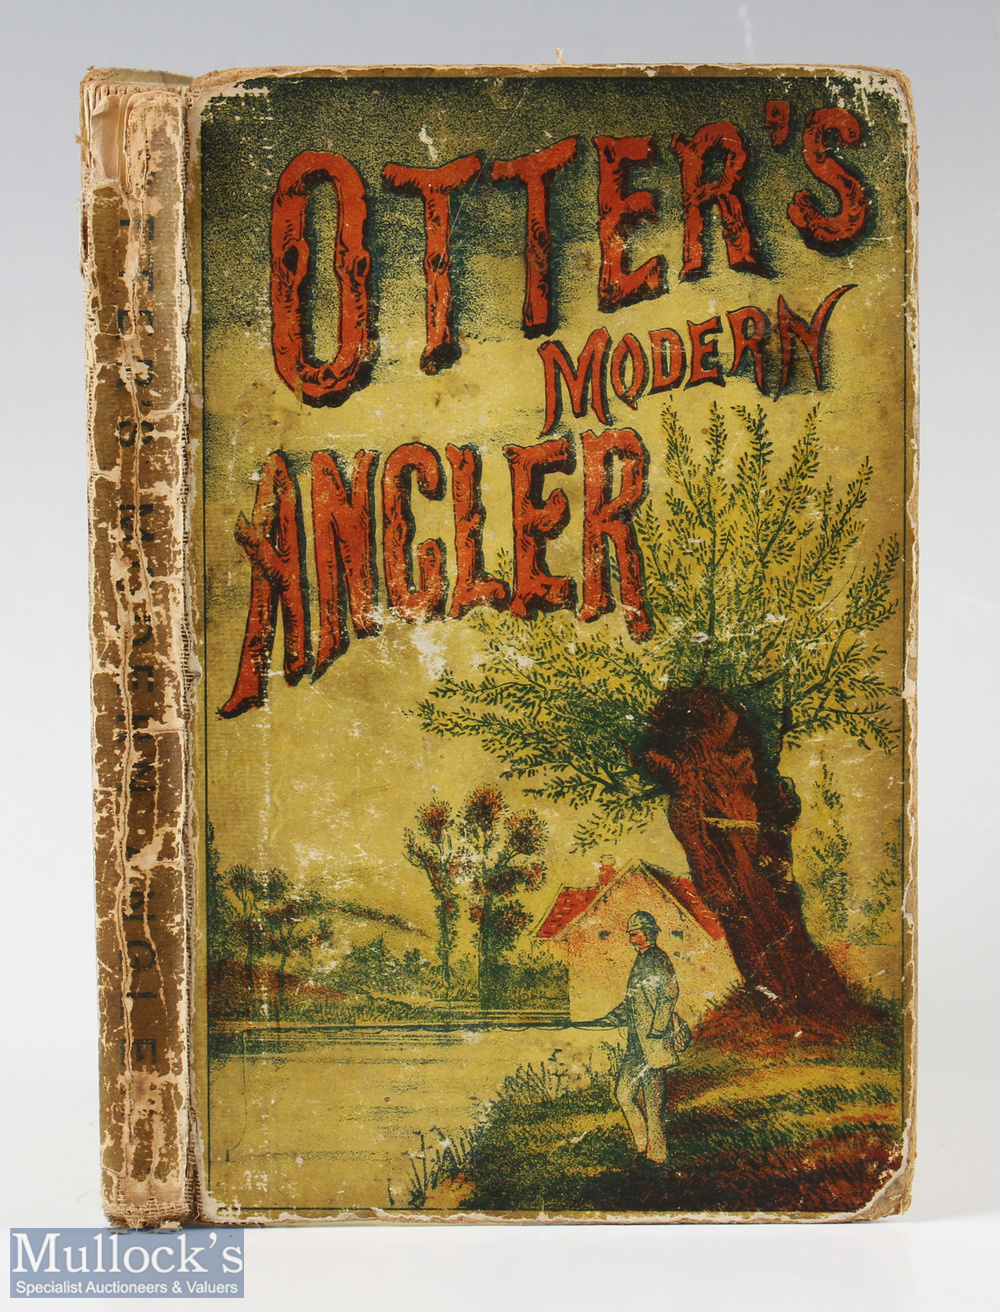 Otter's The Modern Angler – c1881 new edition published by Alfred & Son, London, some pencil notes